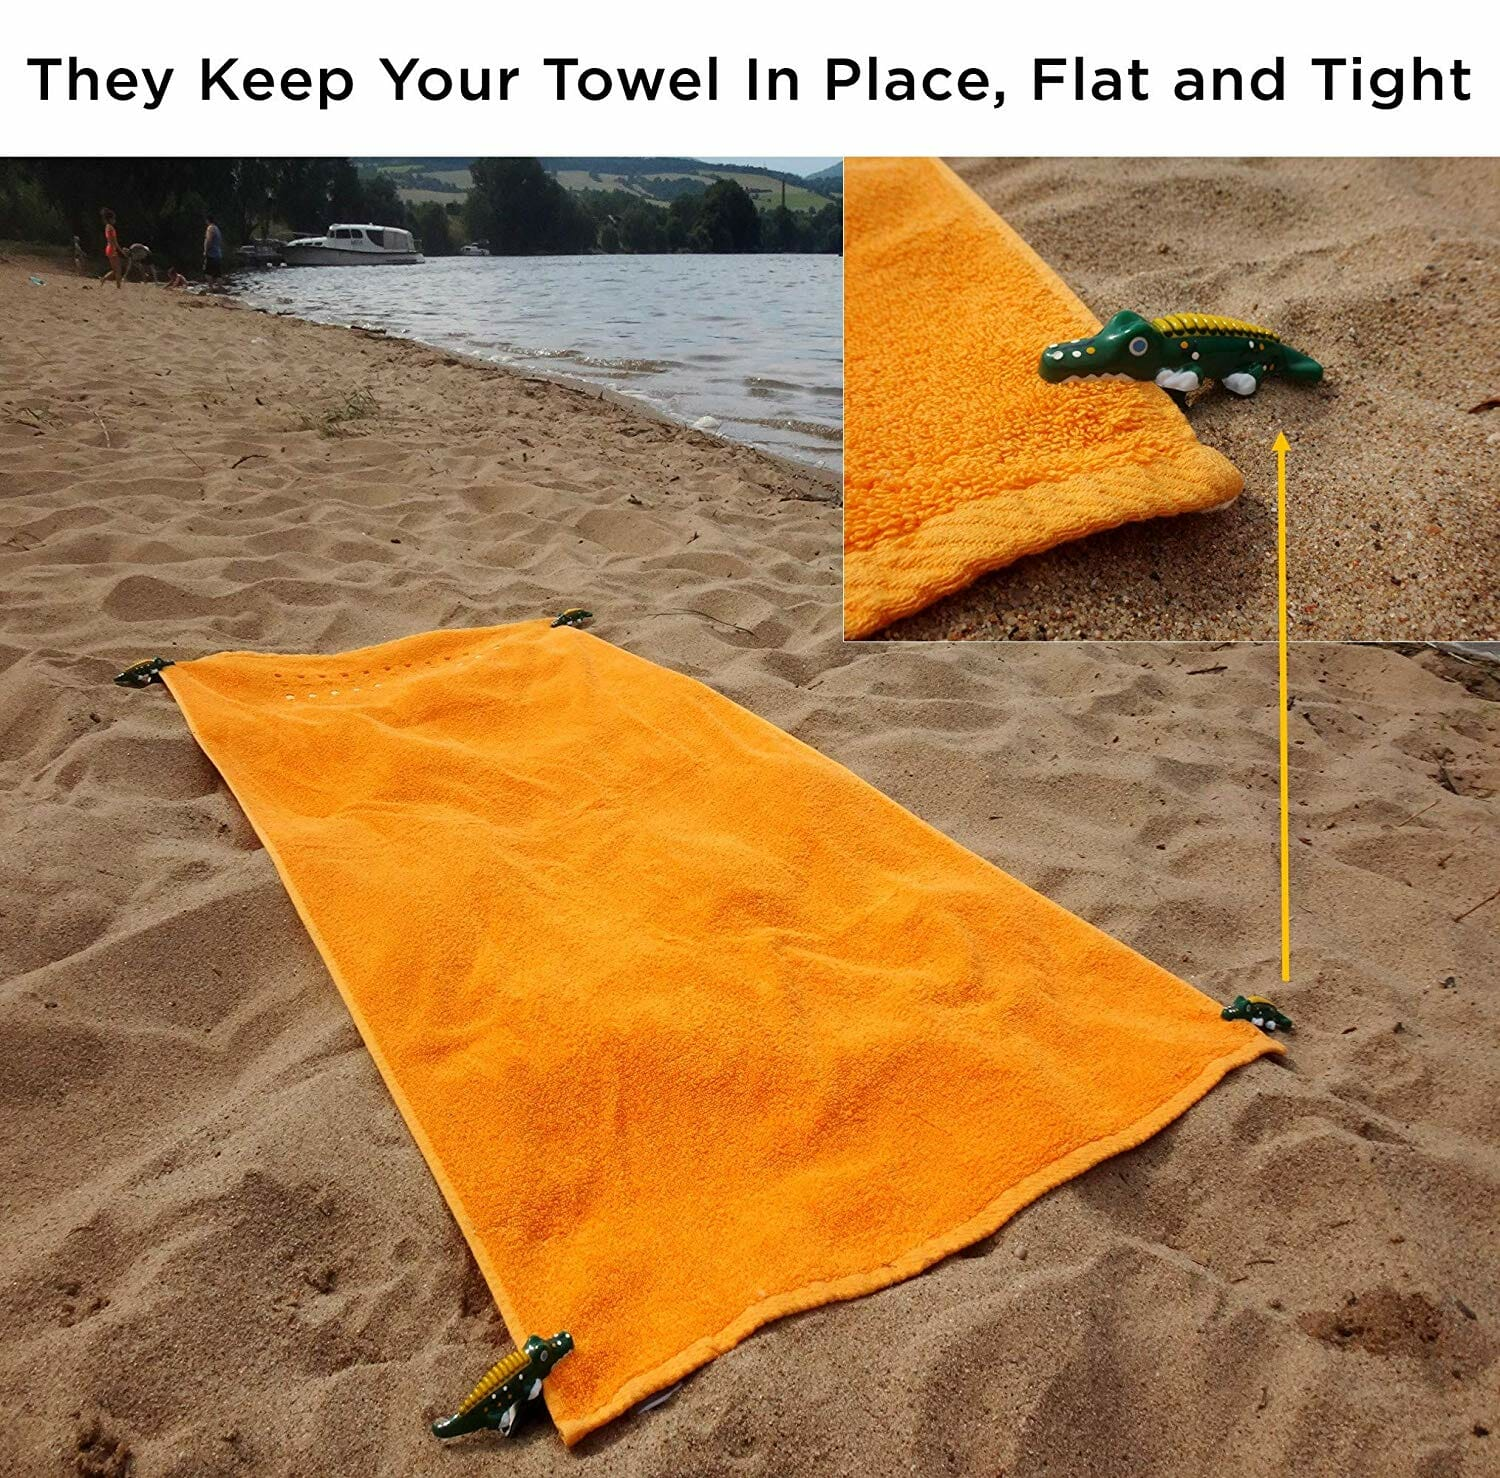 beach-gifts-towel-stakes